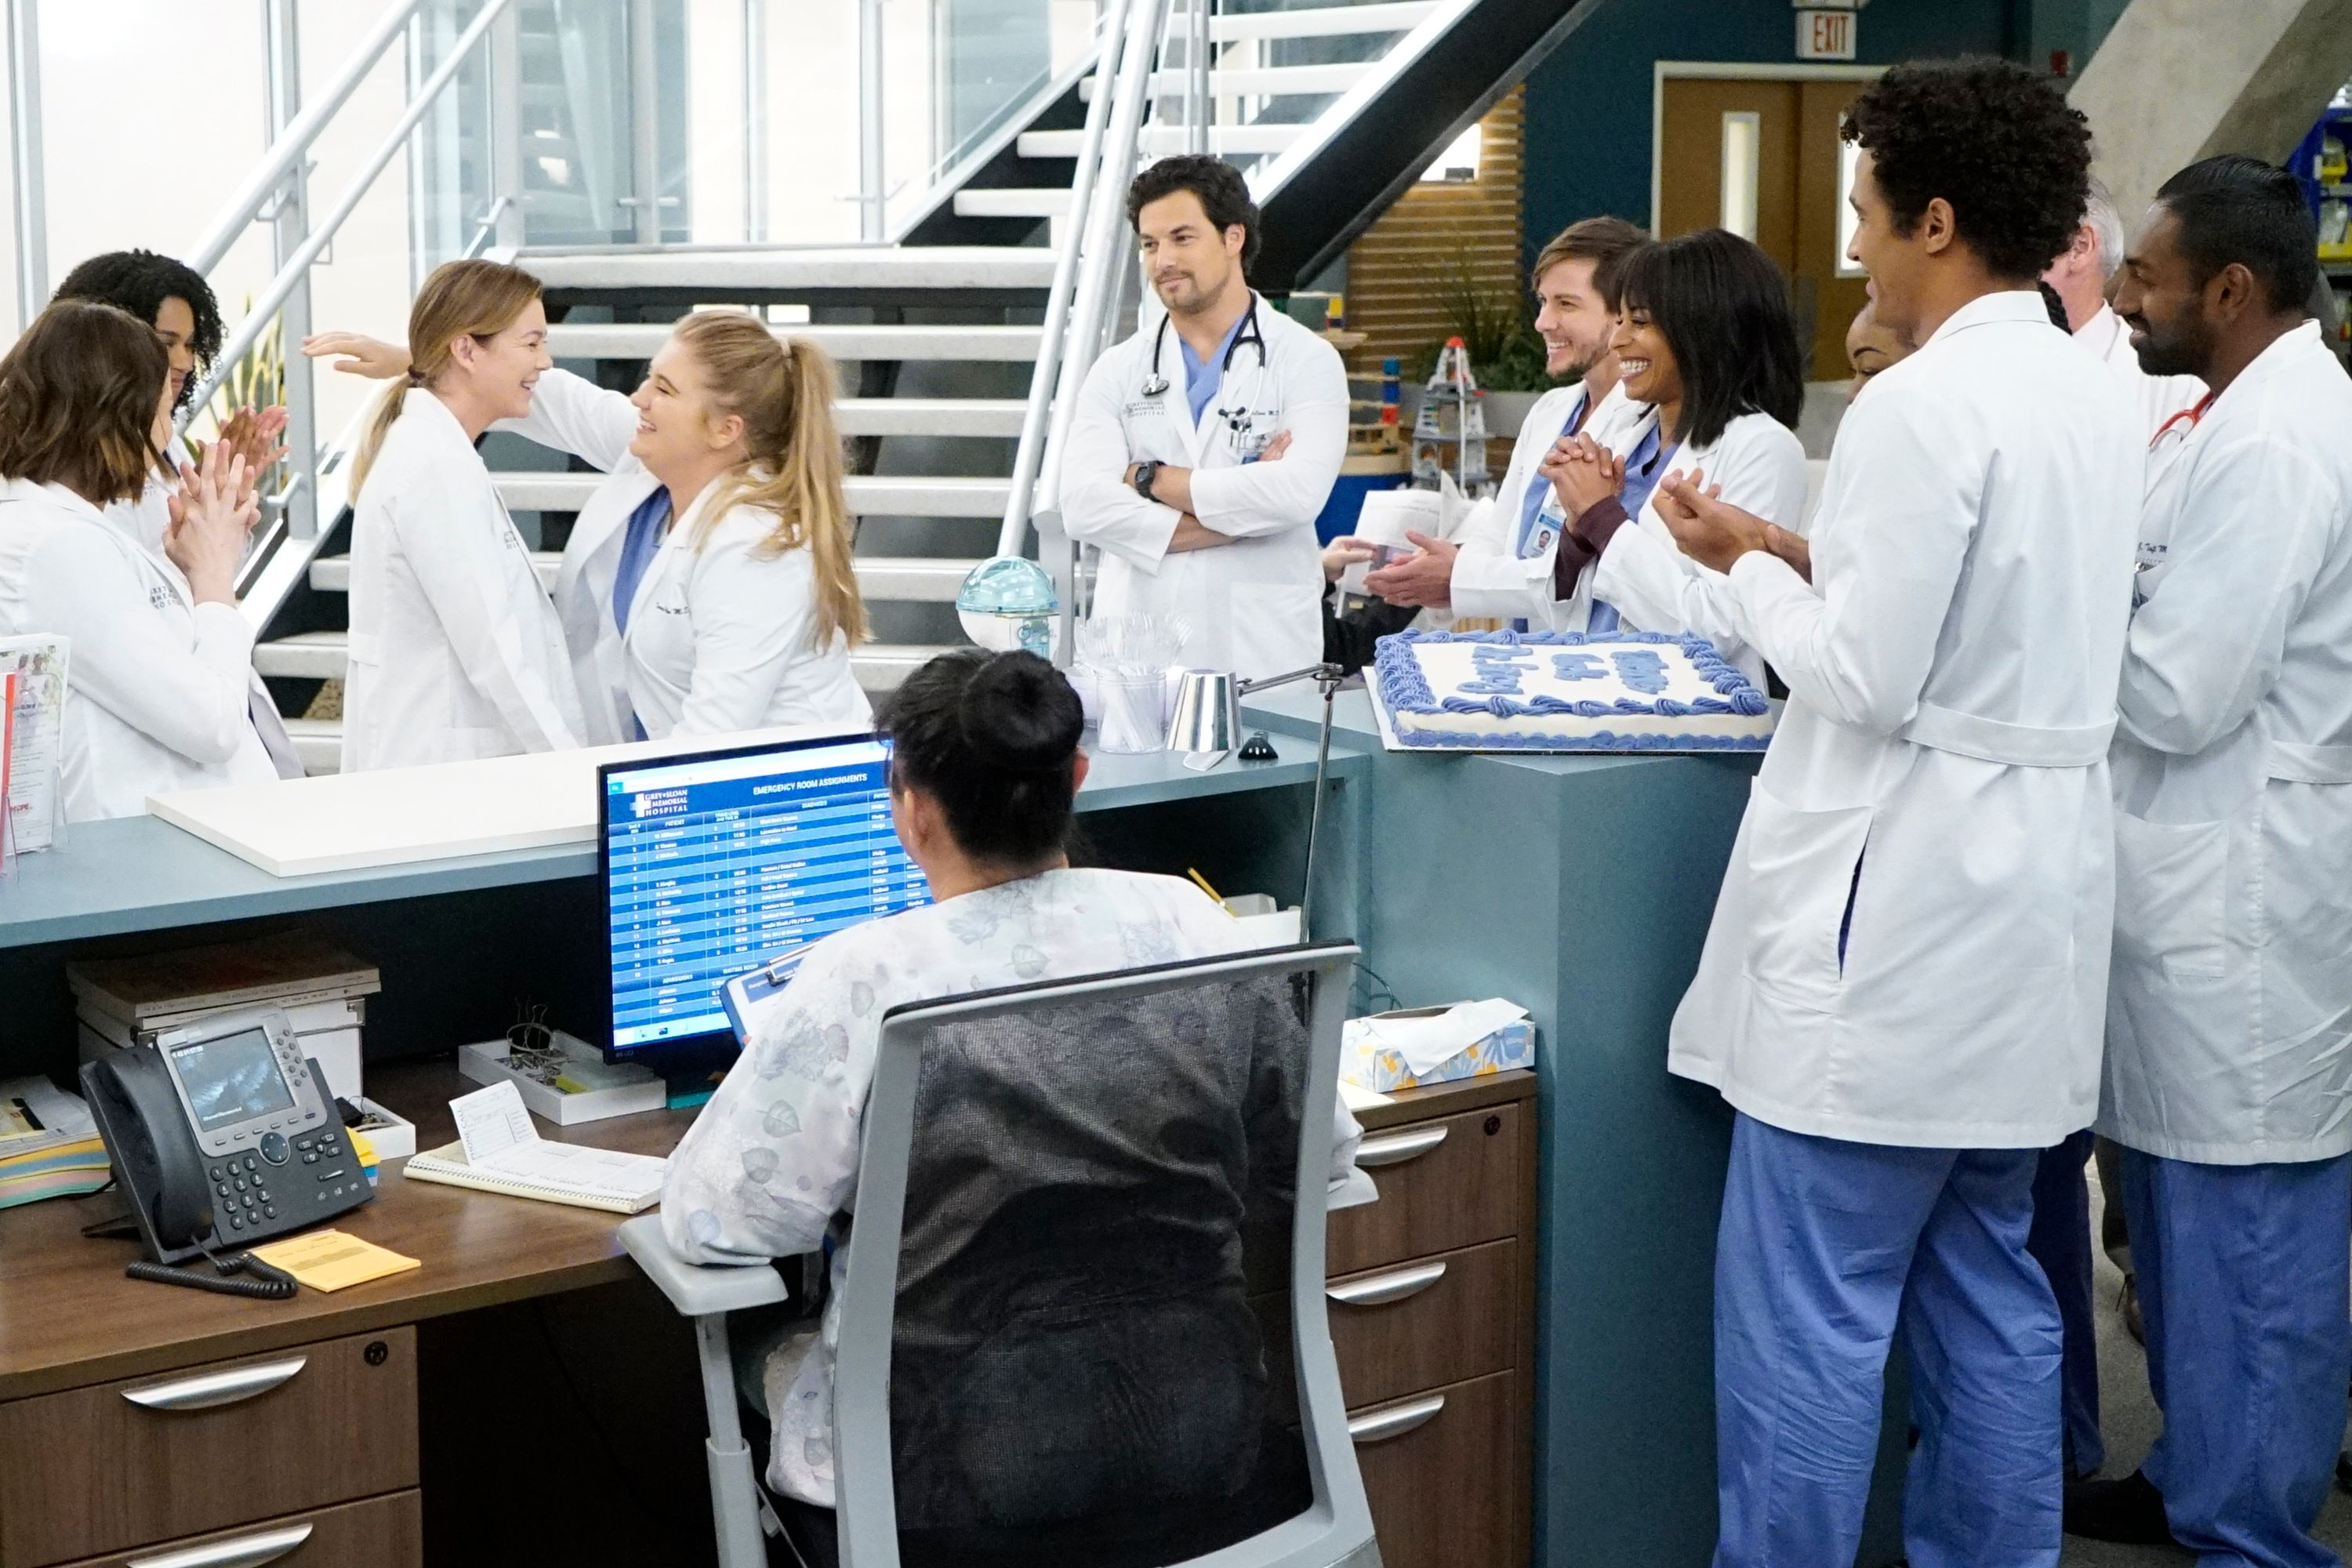 """A portrait of the cast of ABC's """"Grey's Anatomy,"""" during one of the scenes on the show on October 21, 2019 